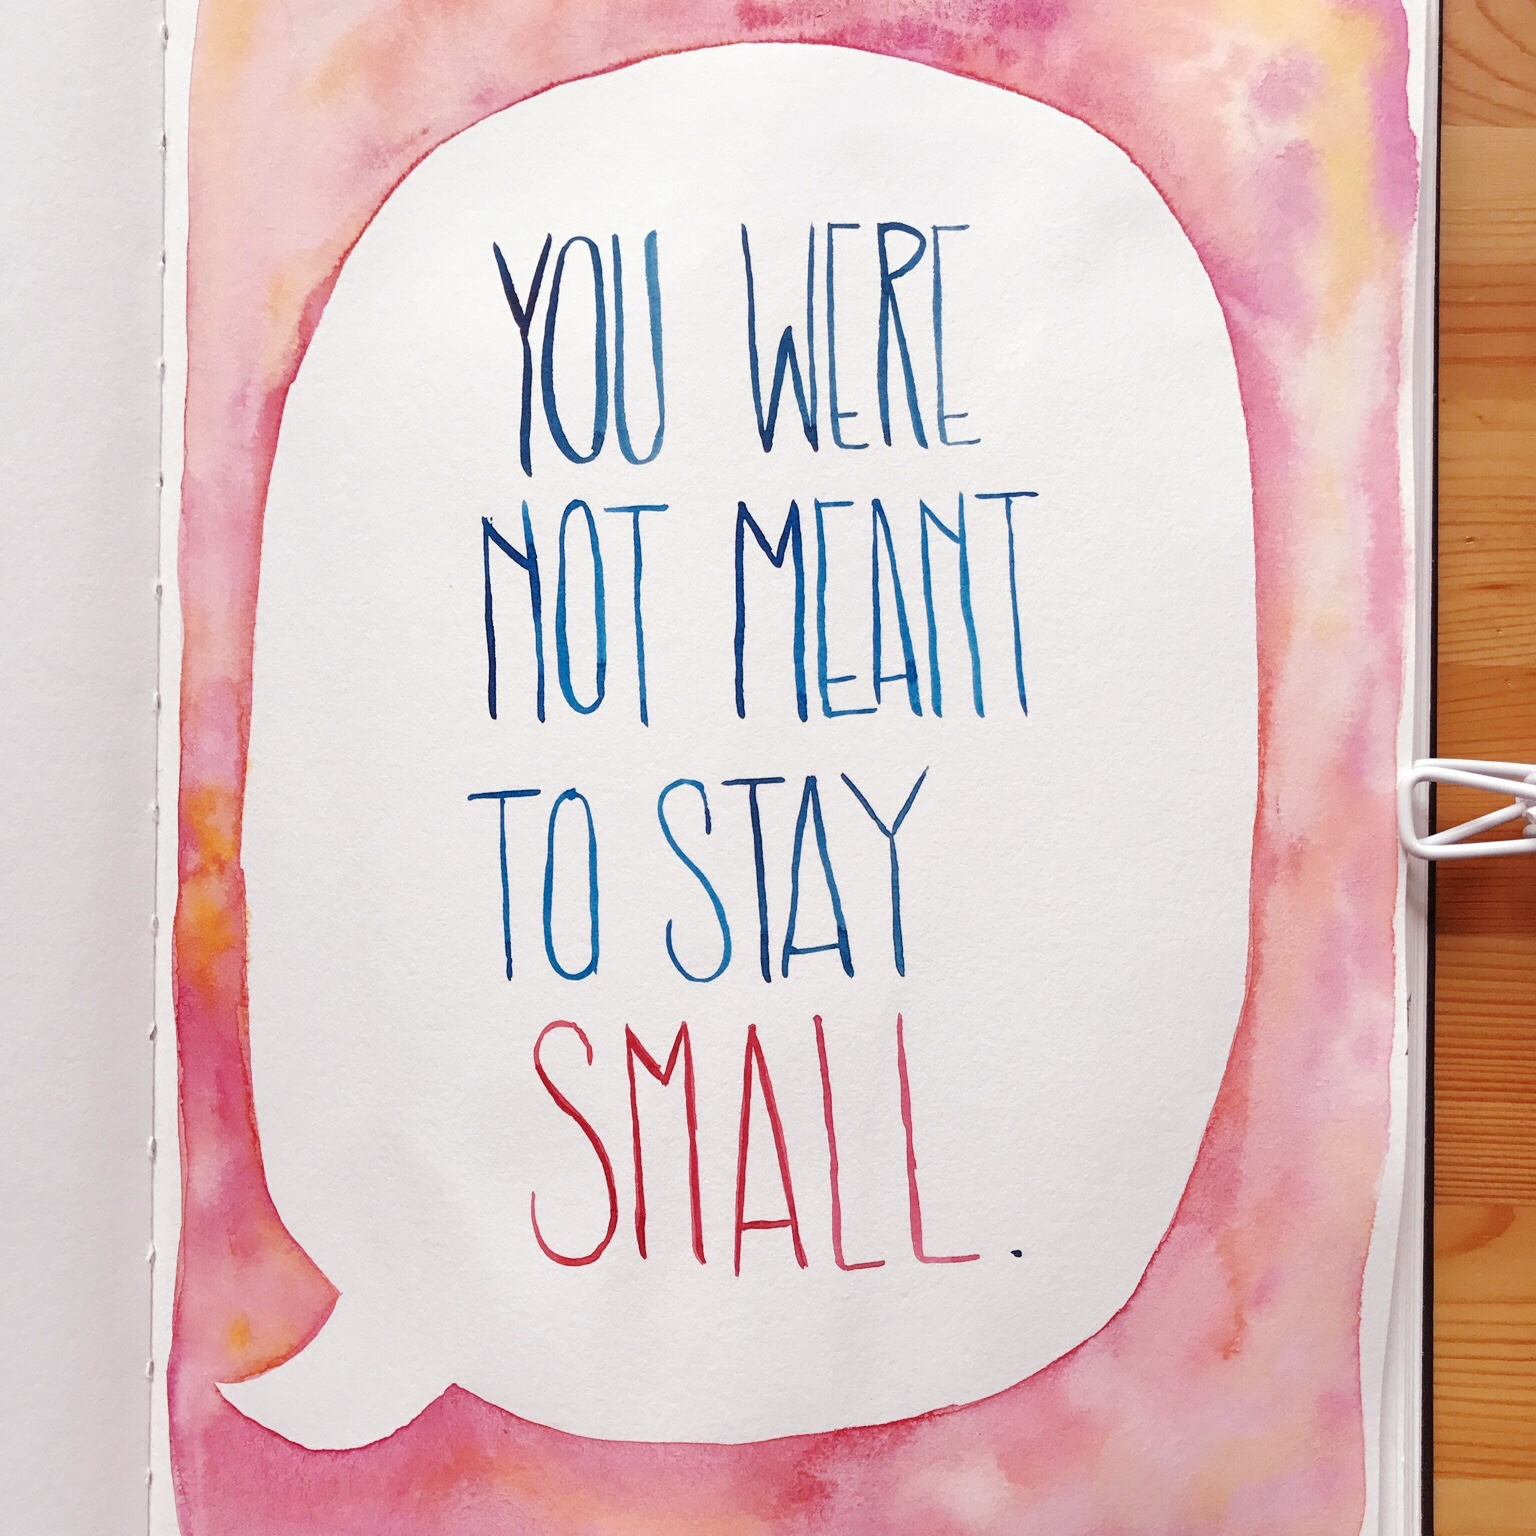 you-were-not-meant-to-stay-small.jpg